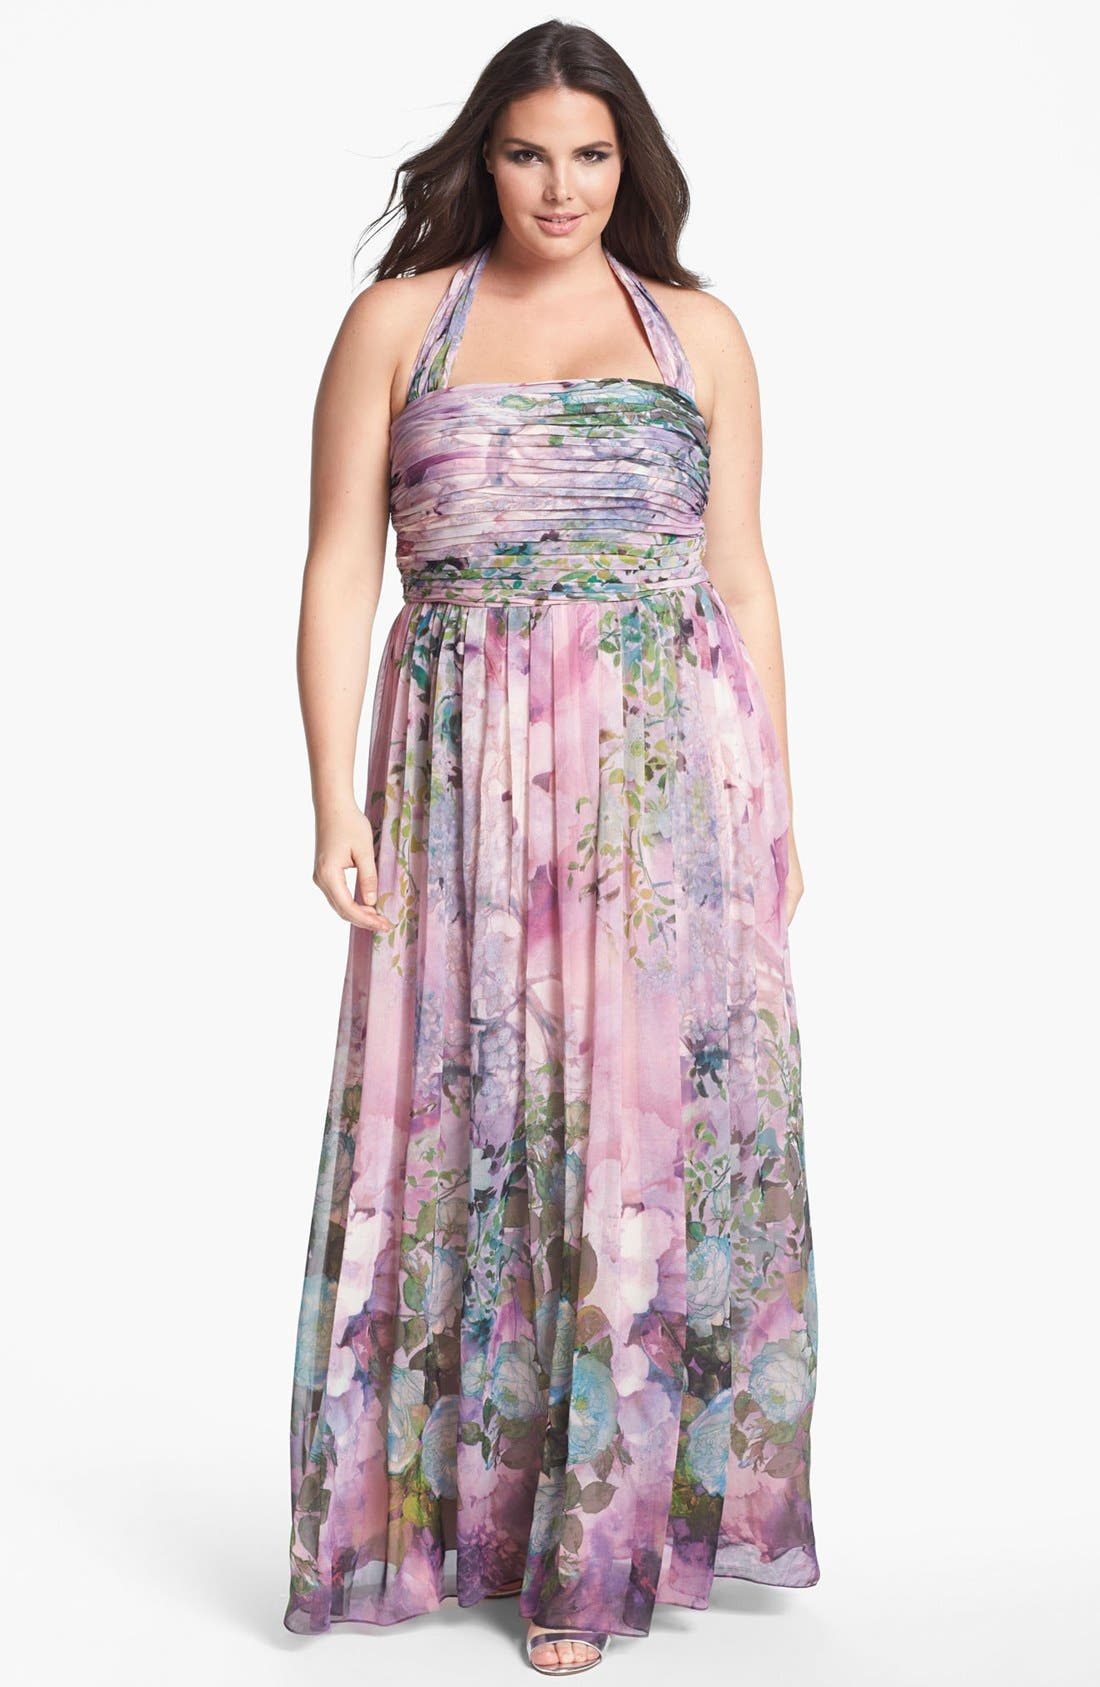 Alternate Image 1 Selected - Adrianna Papell Print Chiffon Halter Dress (Plus Size)